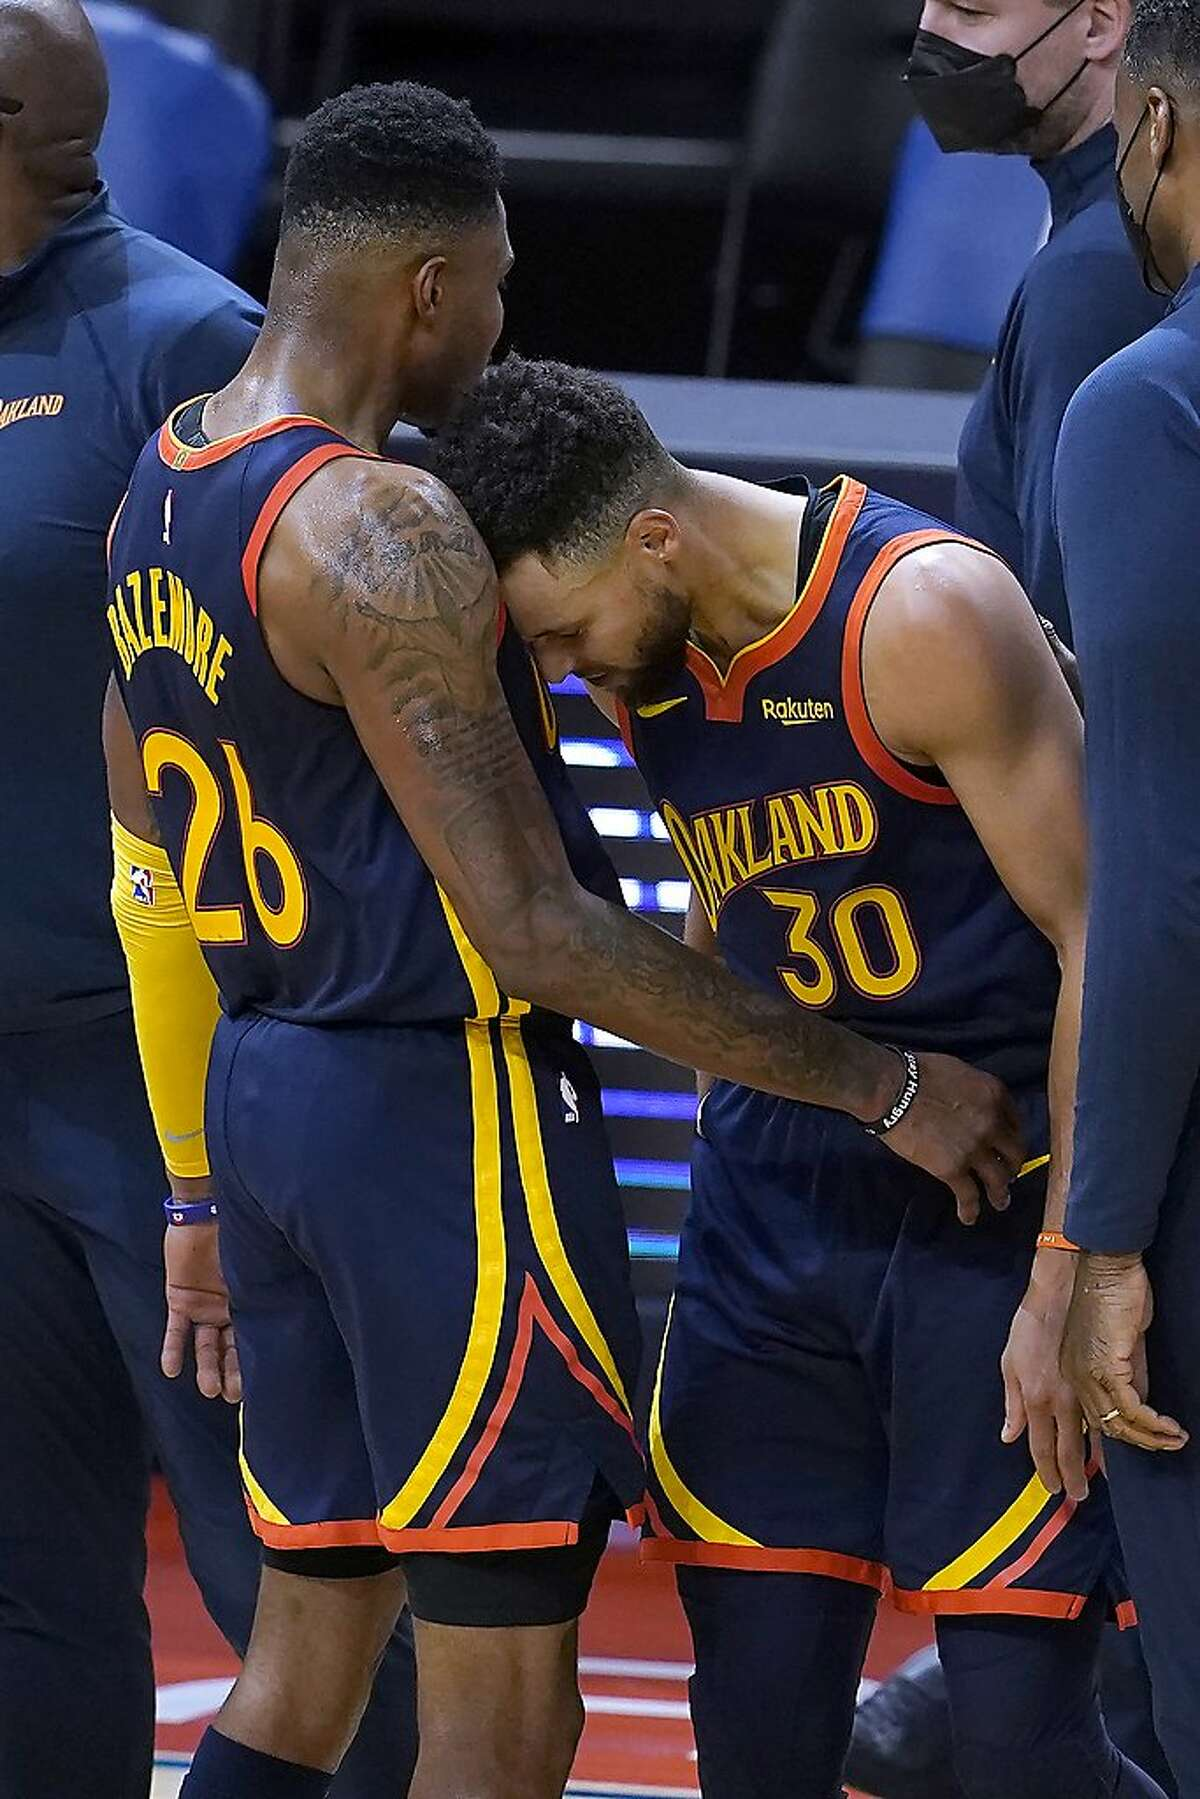 Golden State Warriors forward Kent Bazemore (26) celebrates with guard Stephen Curry (30) during overtime of the team's NBA basketball game against the Miami Heat in San Francisco, Wednesday, Feb. 17, 2021. (AP Photo/Jeff Chiu)